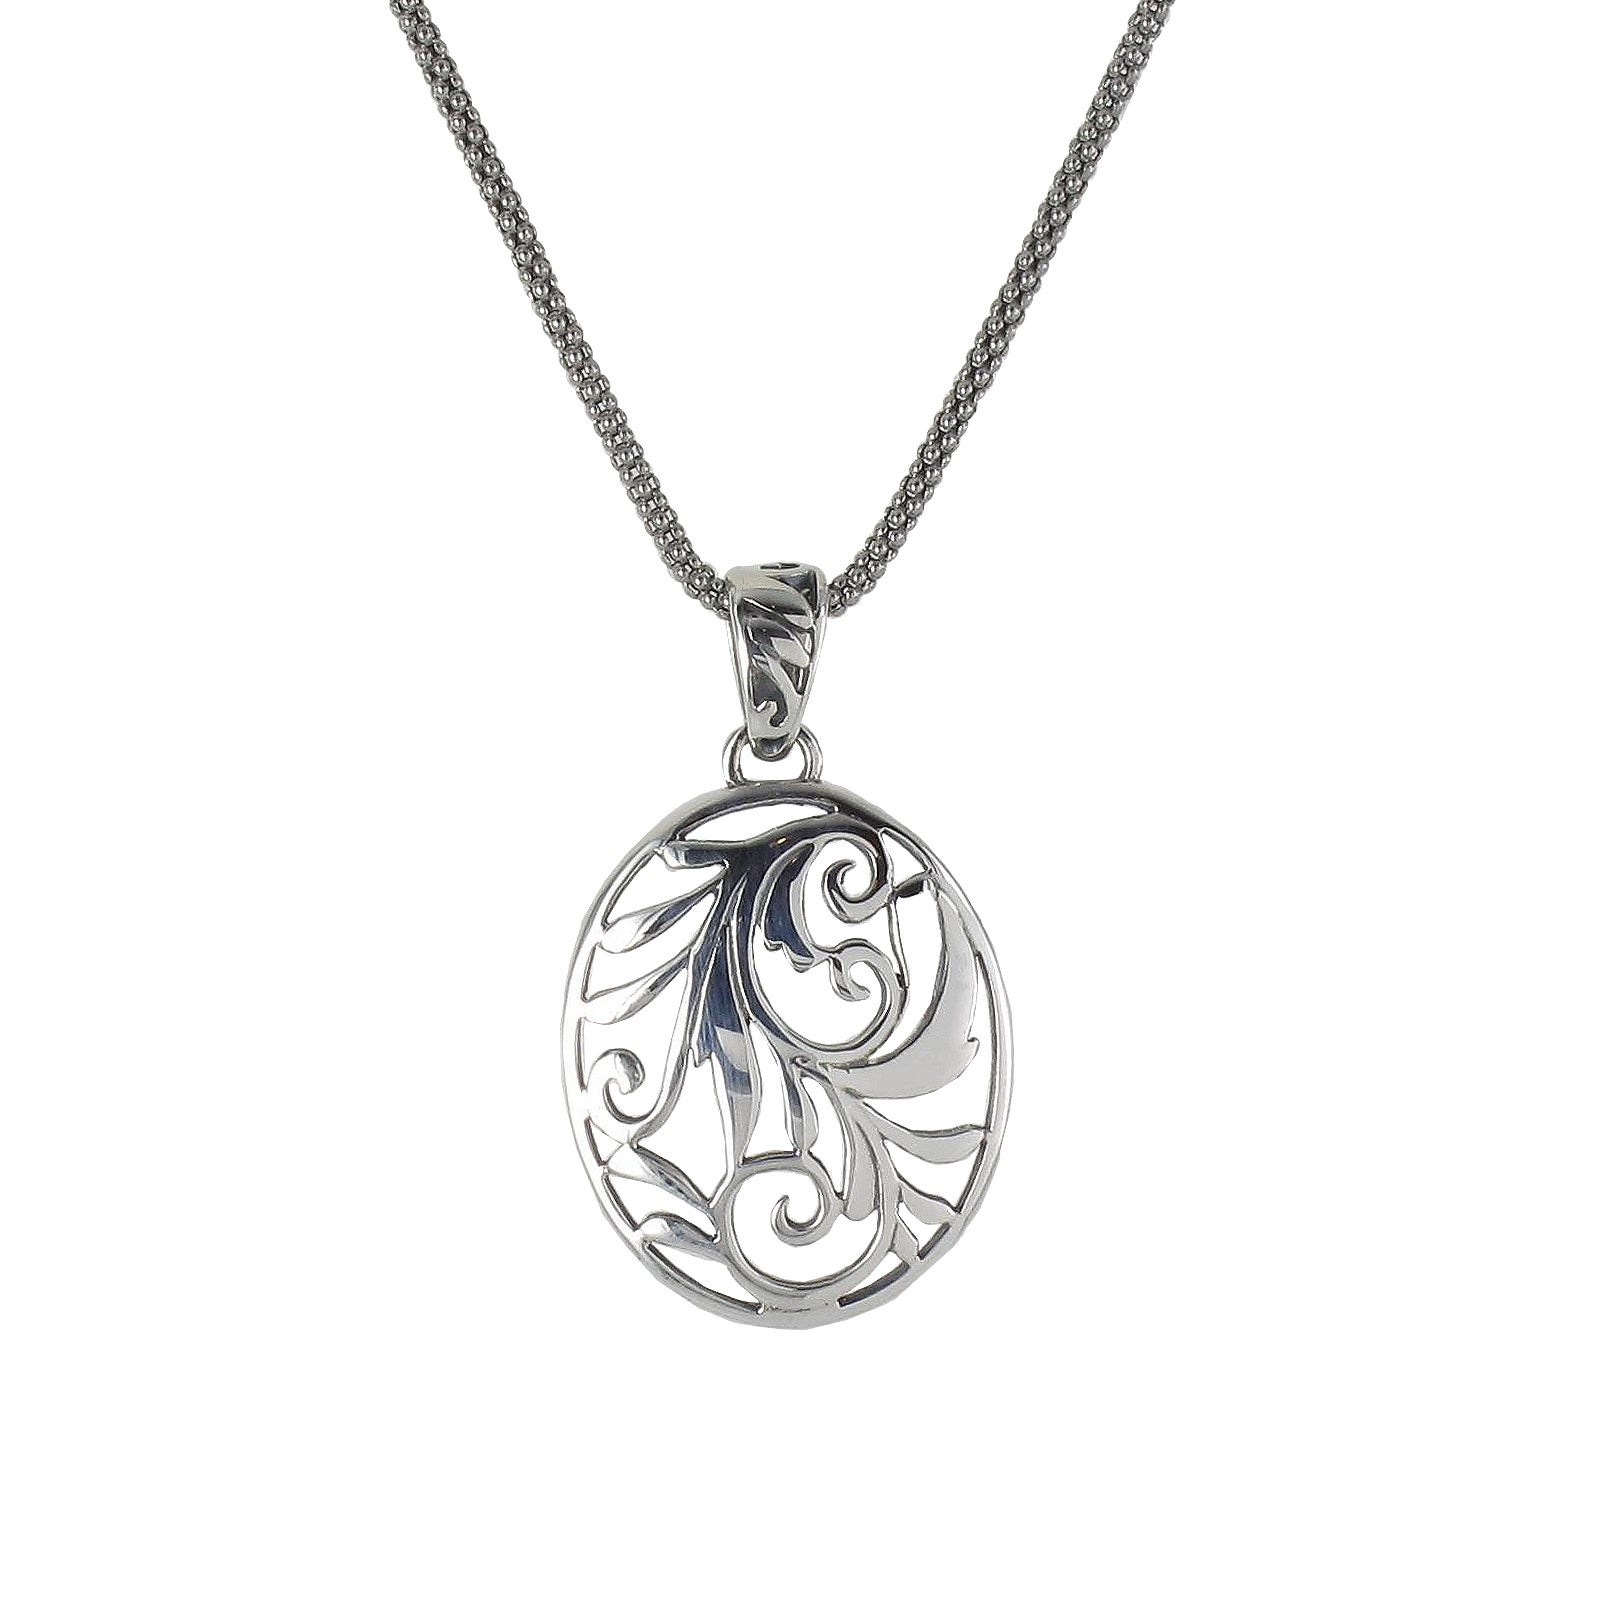 Sunstone Sterling Silver Filigree Oval Pendant Necklace